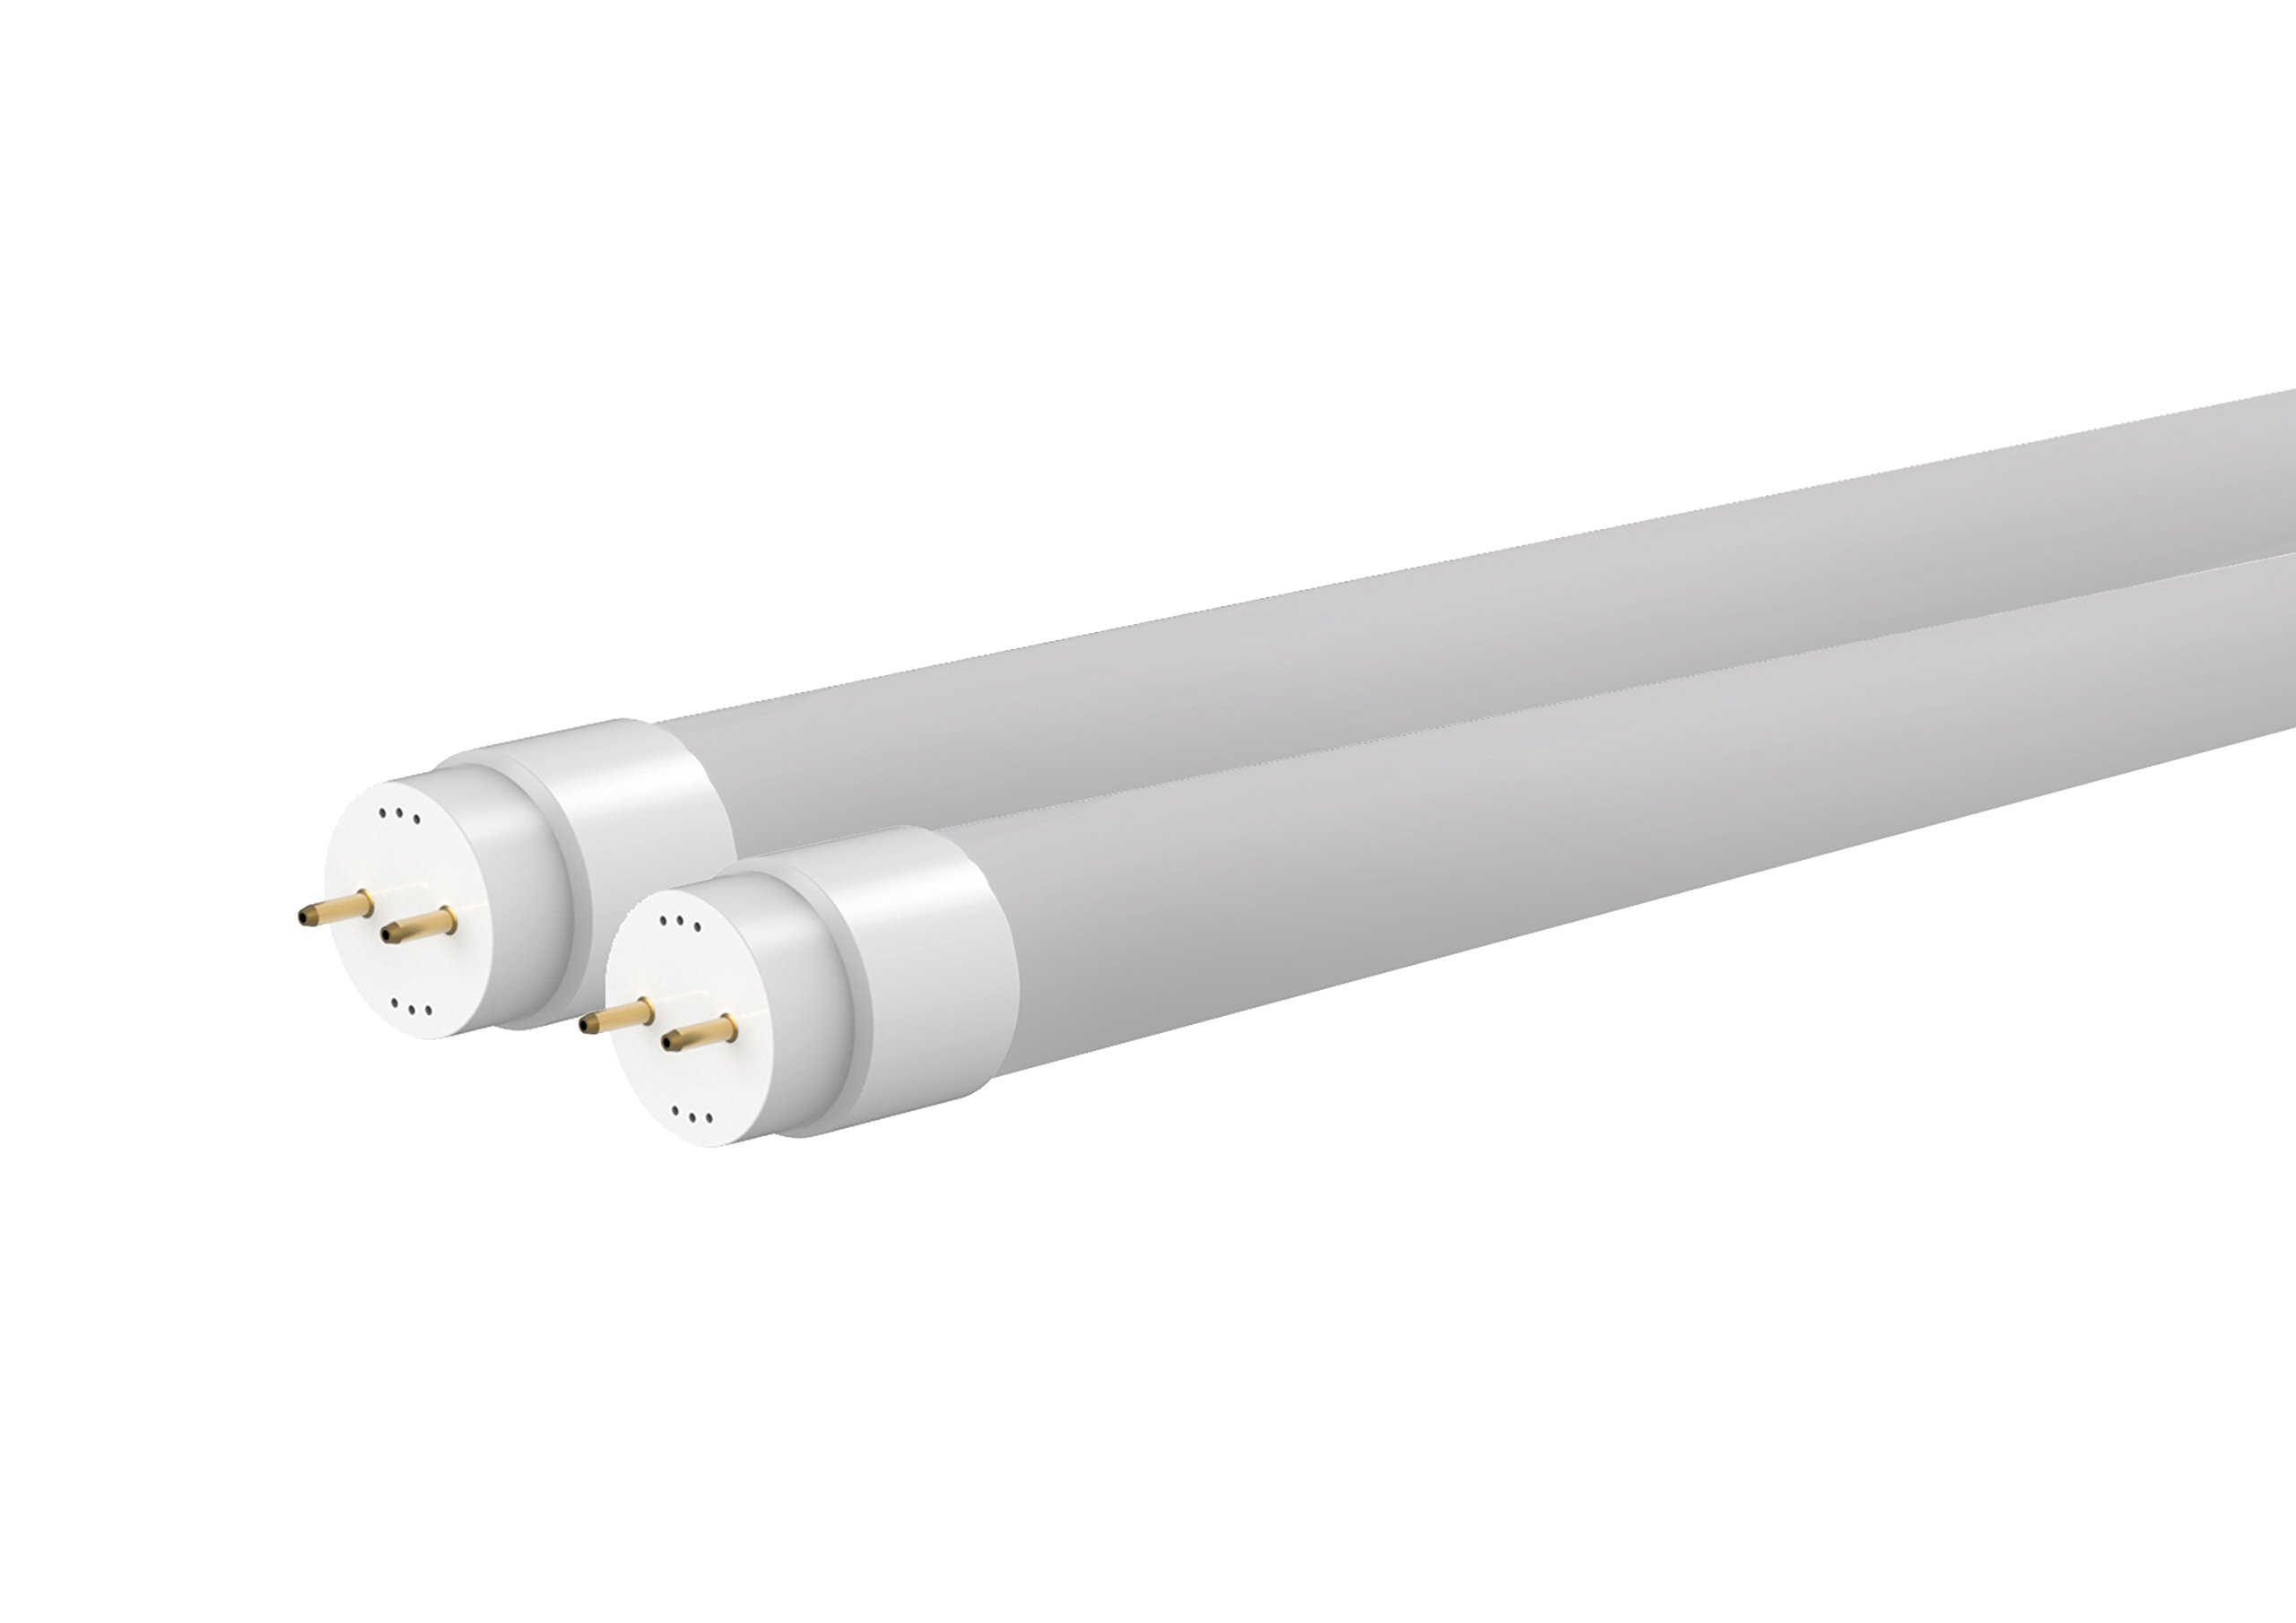 Pack 2 tubos LED 120cm 18W, color blanco neutro 4000K, Nano plástico, incluye